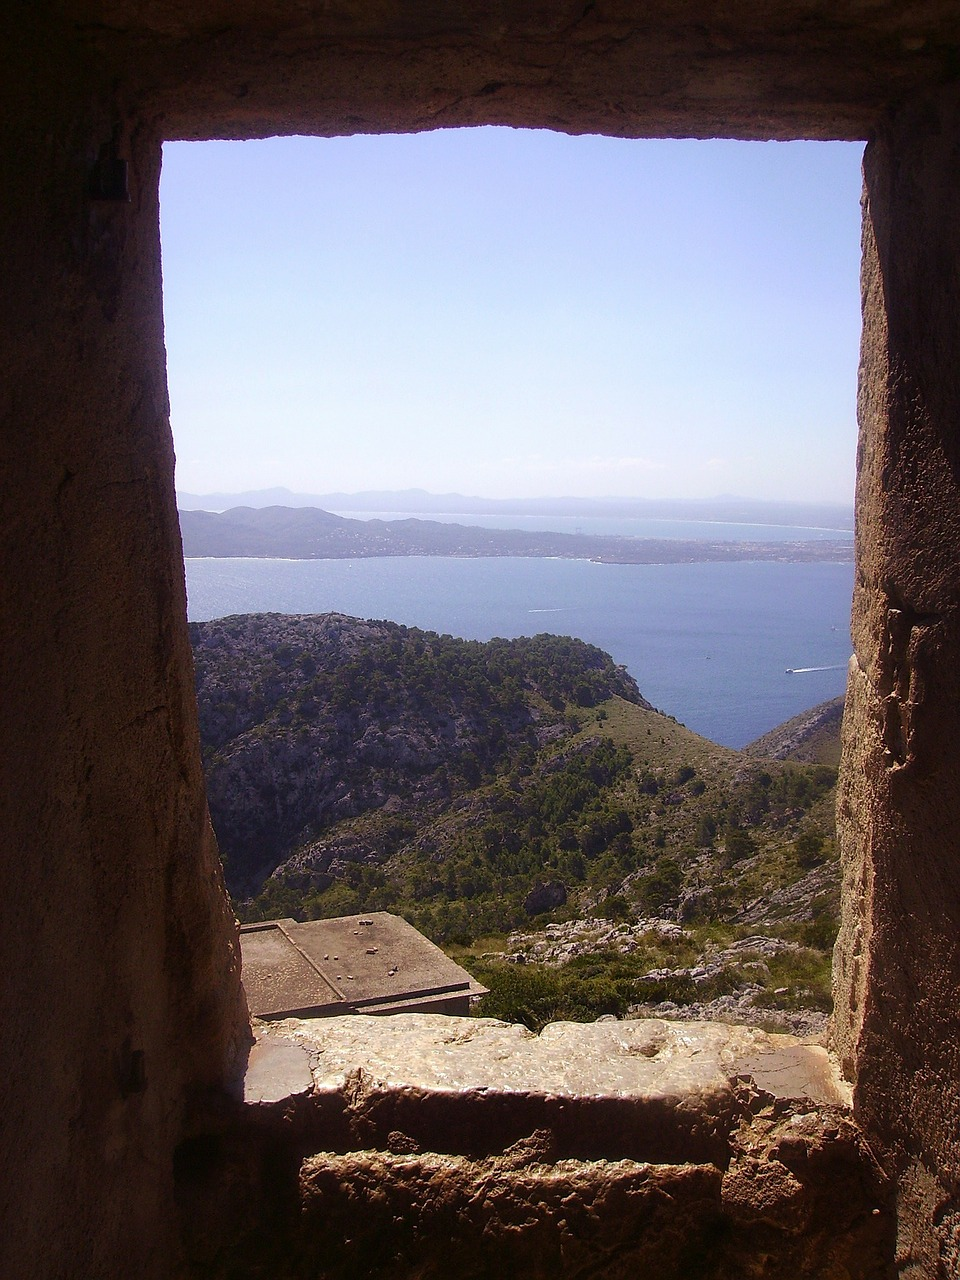 majorca landscape door free photo